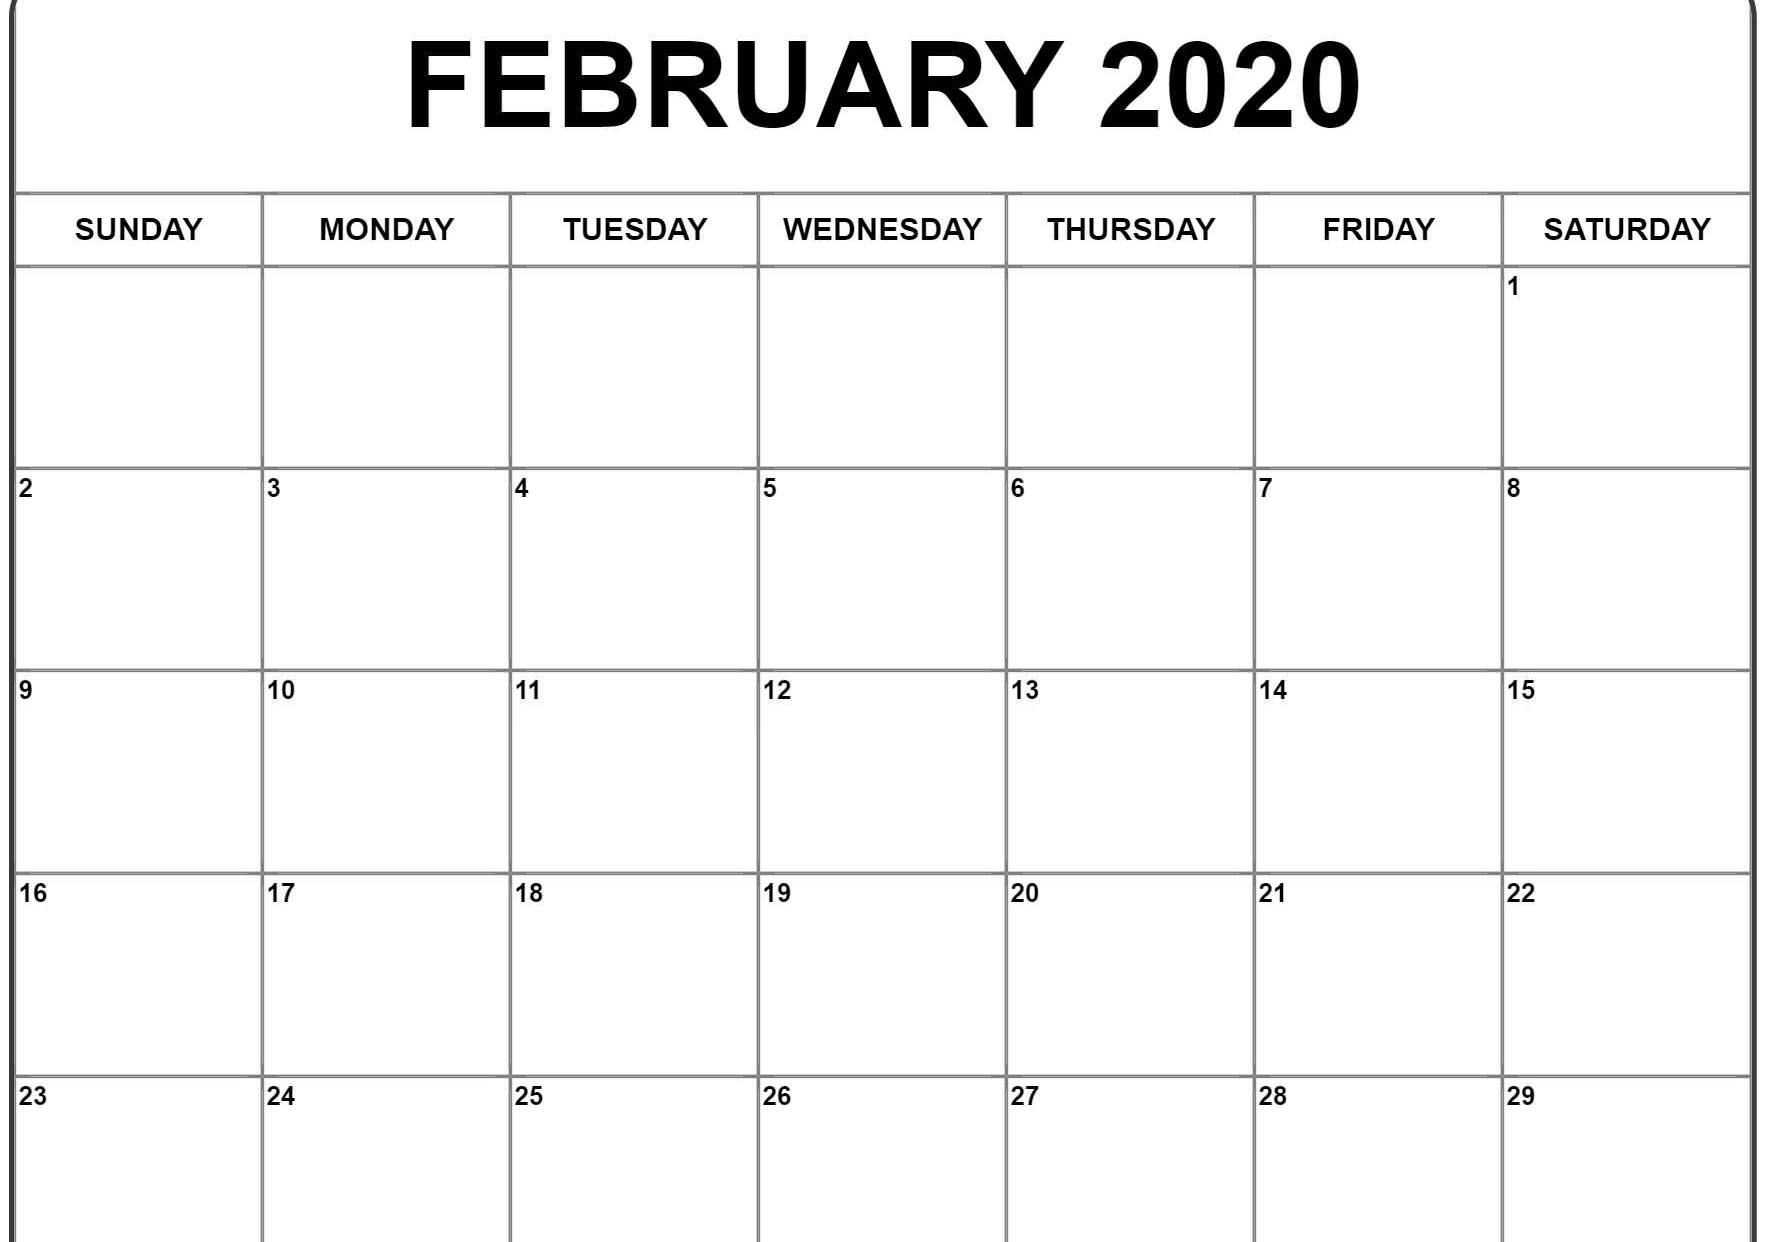 February 2020 Calendar Pdf, Word, Excel Printable Template